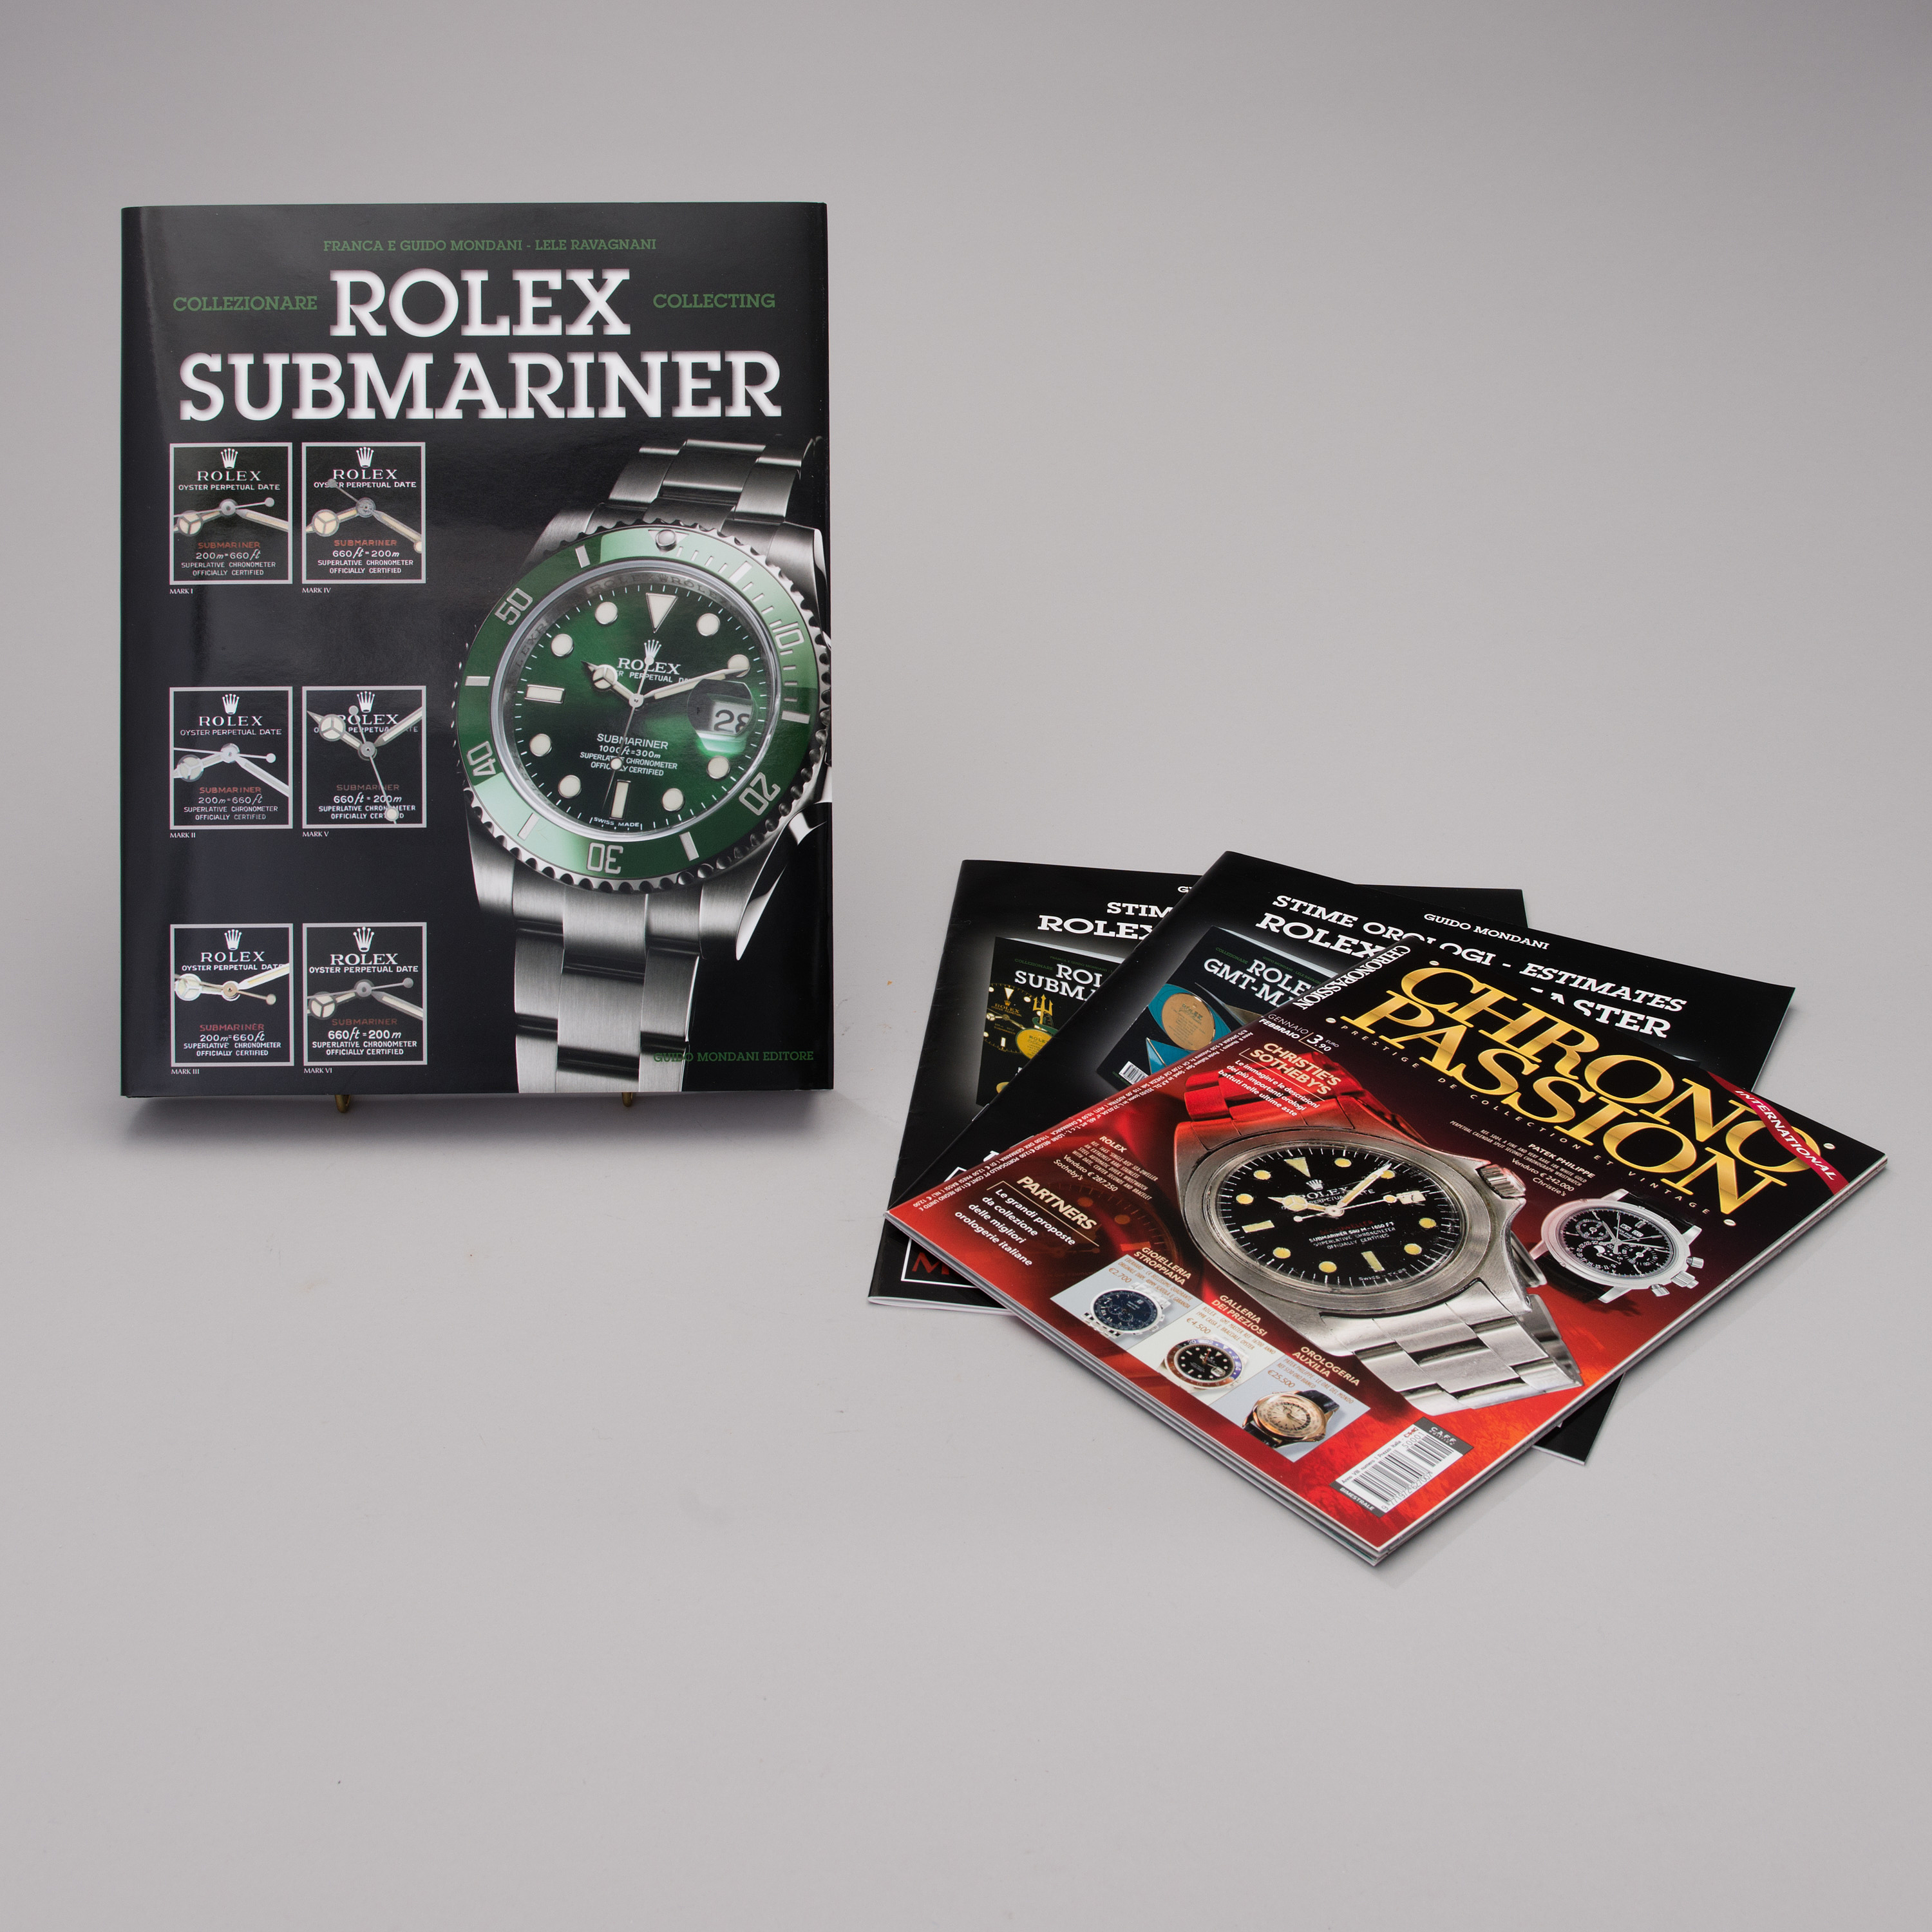 3dffb699c78 COLLECTING ROLEX SUBMARINER book by Franca and Guido Mondani